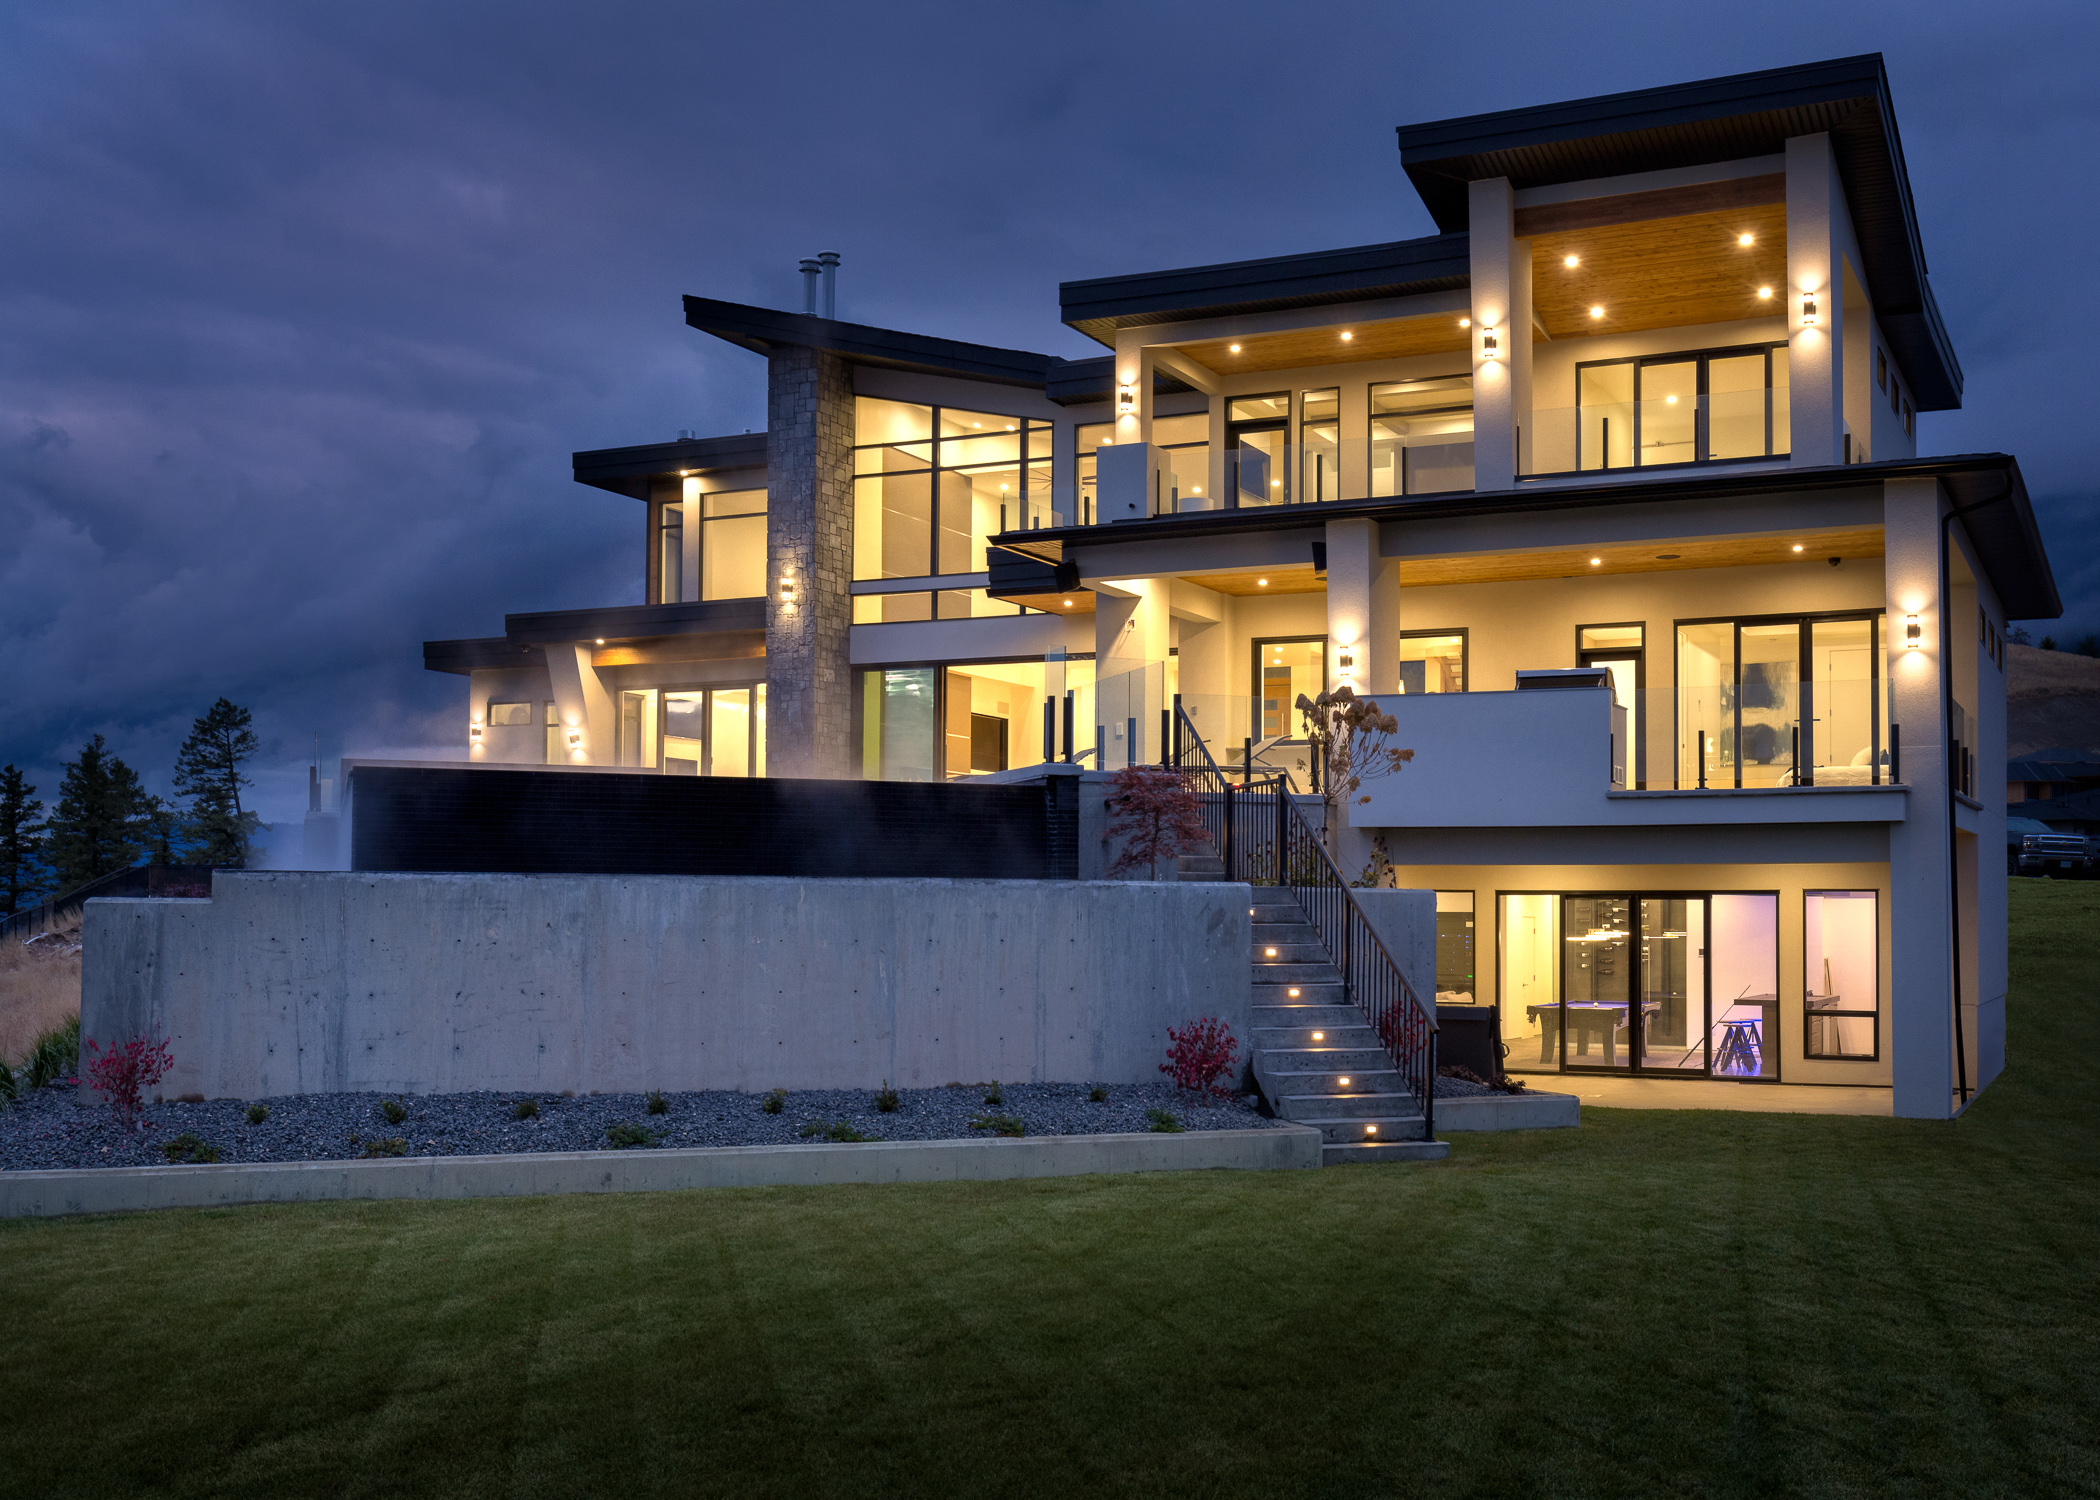 Executive home lit up at night